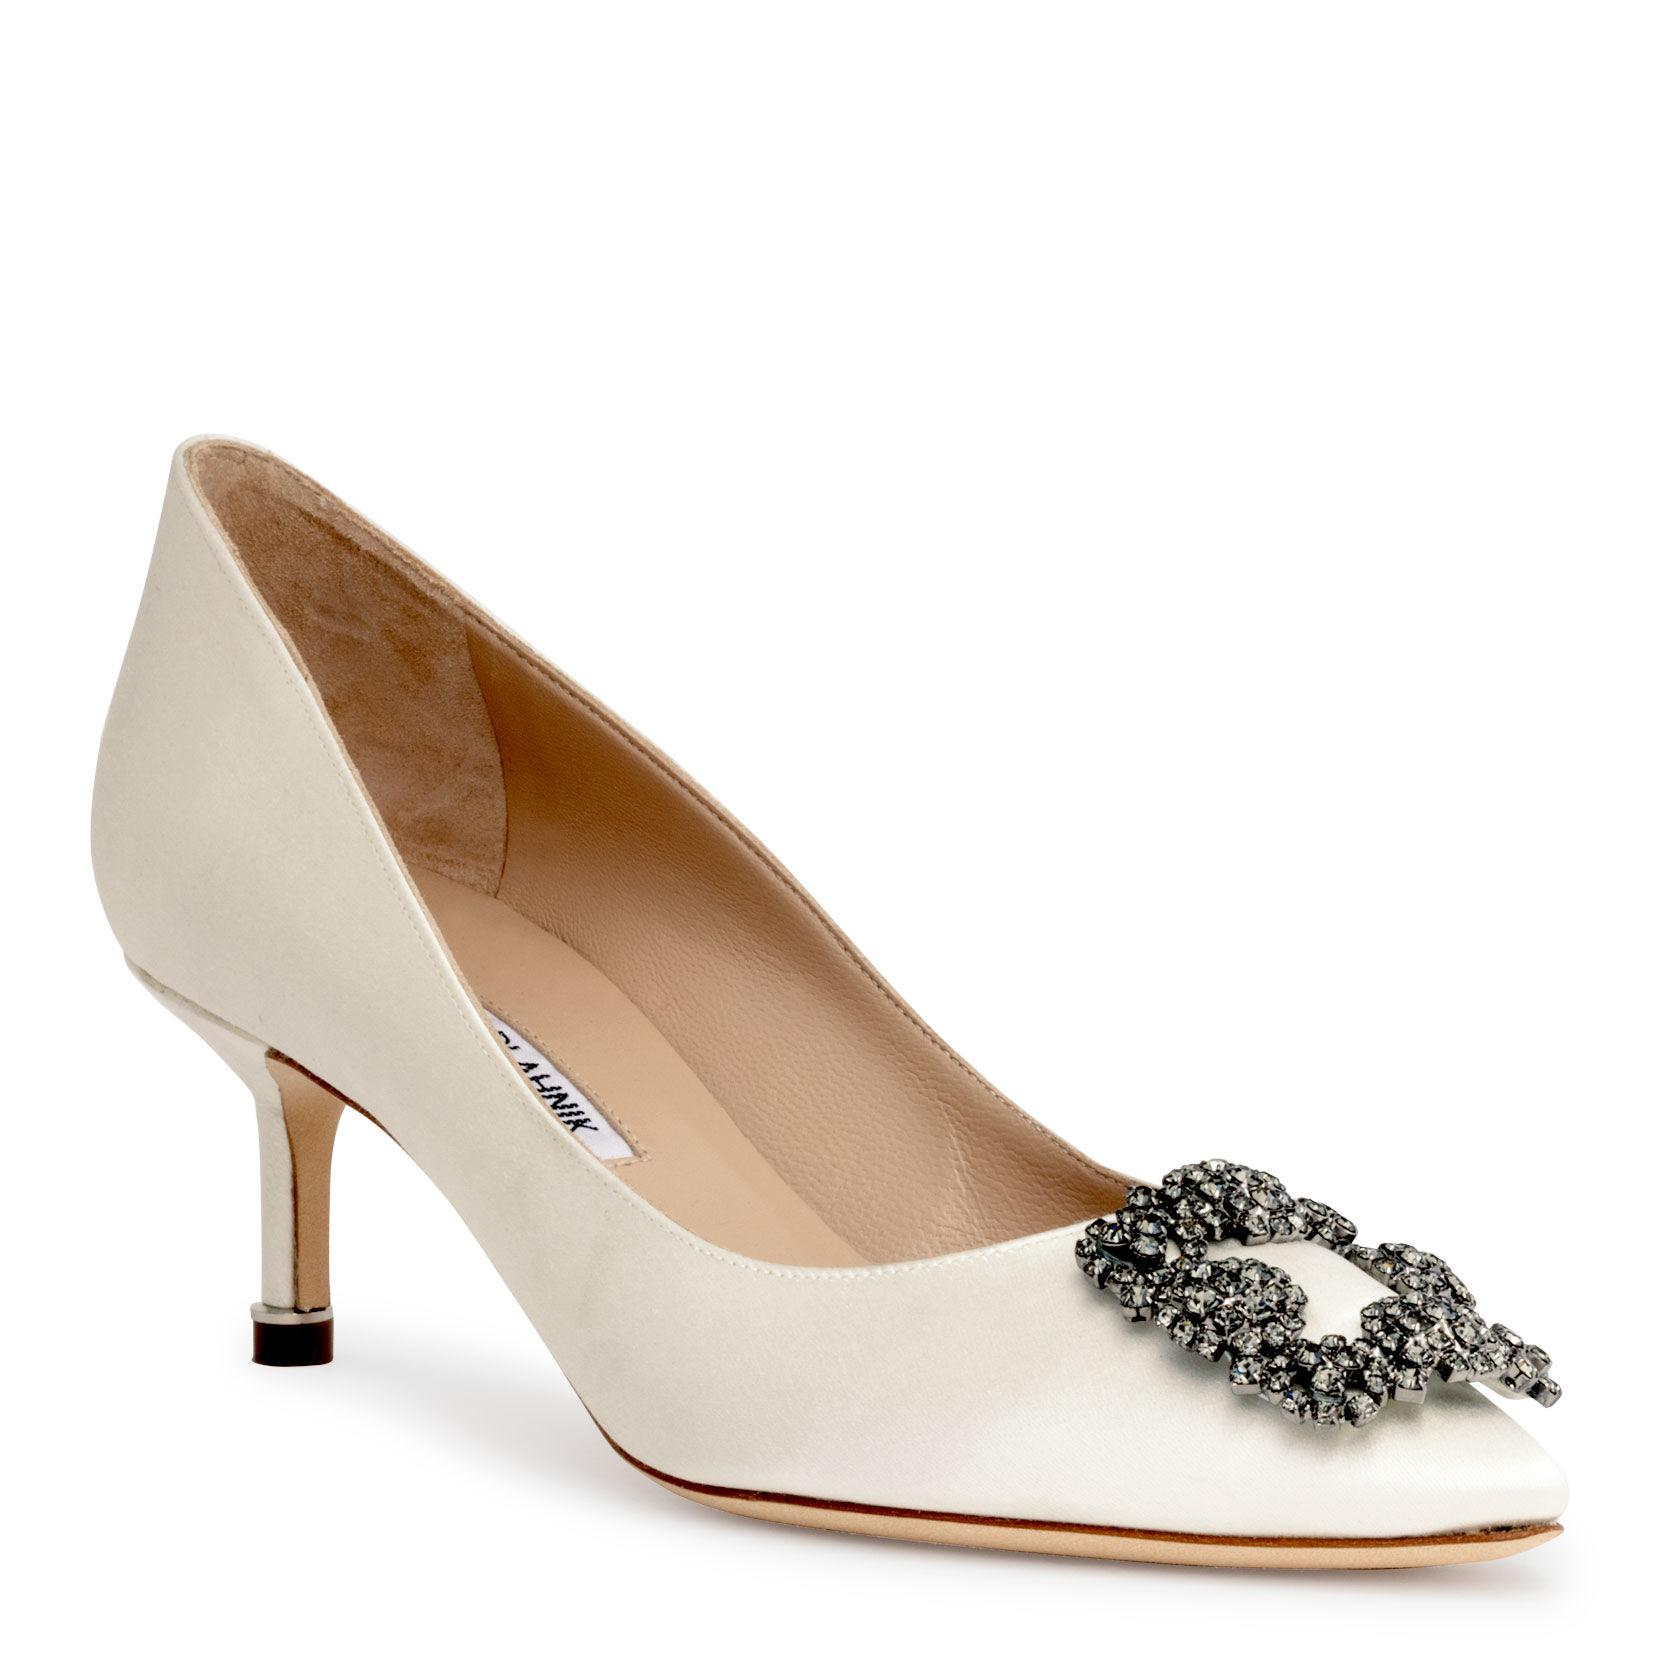 d2712a8a349b Lyst - Manolo Blahnik Hangisi 50 Satin Pump Ivory Us in White - Save 15%